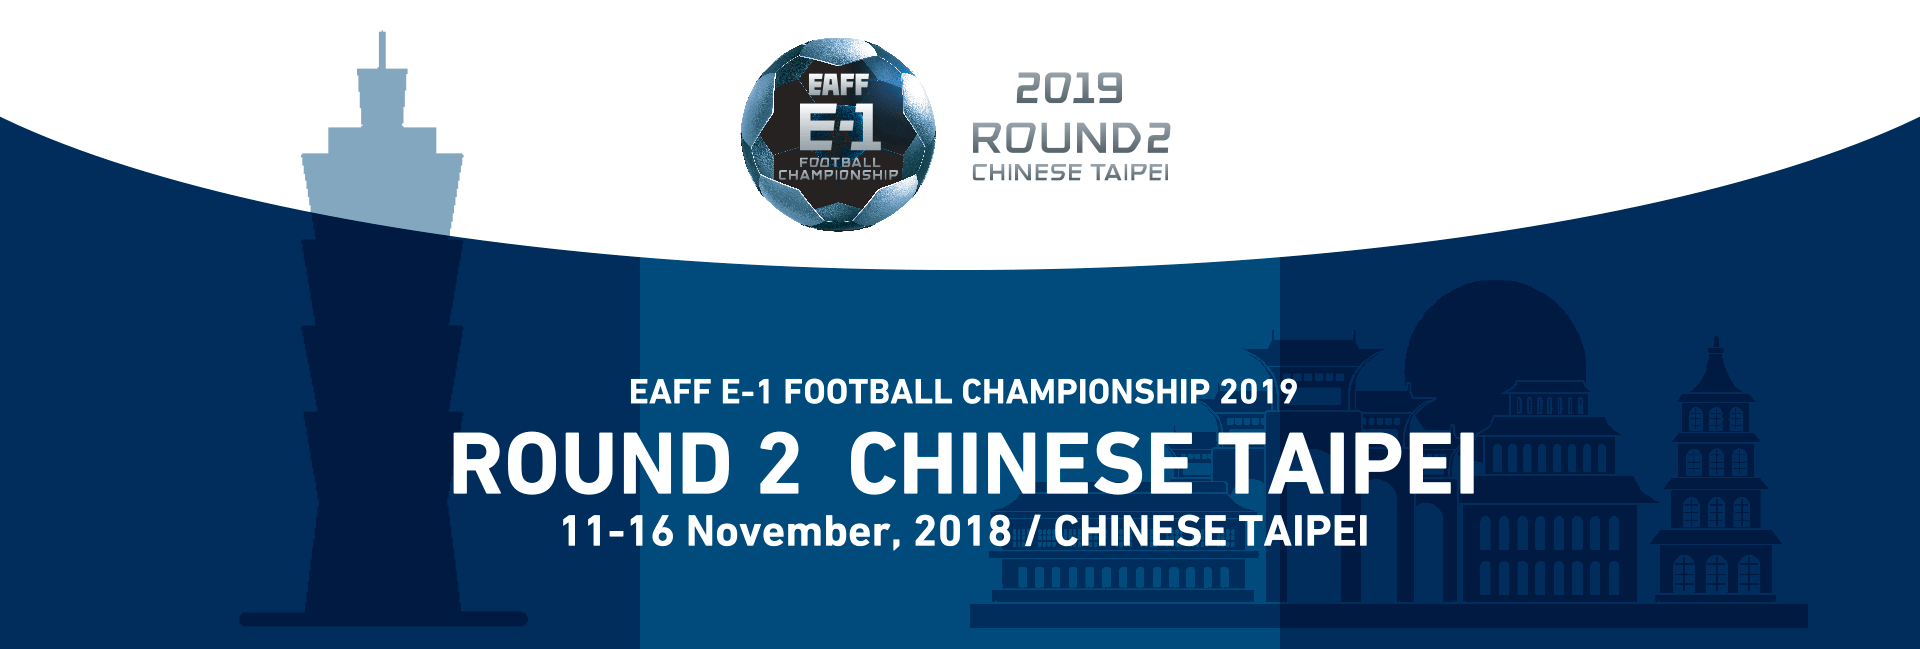 EAFF E-1 Football Championship 2019 Preliminary Round 2 Chinese Taipei